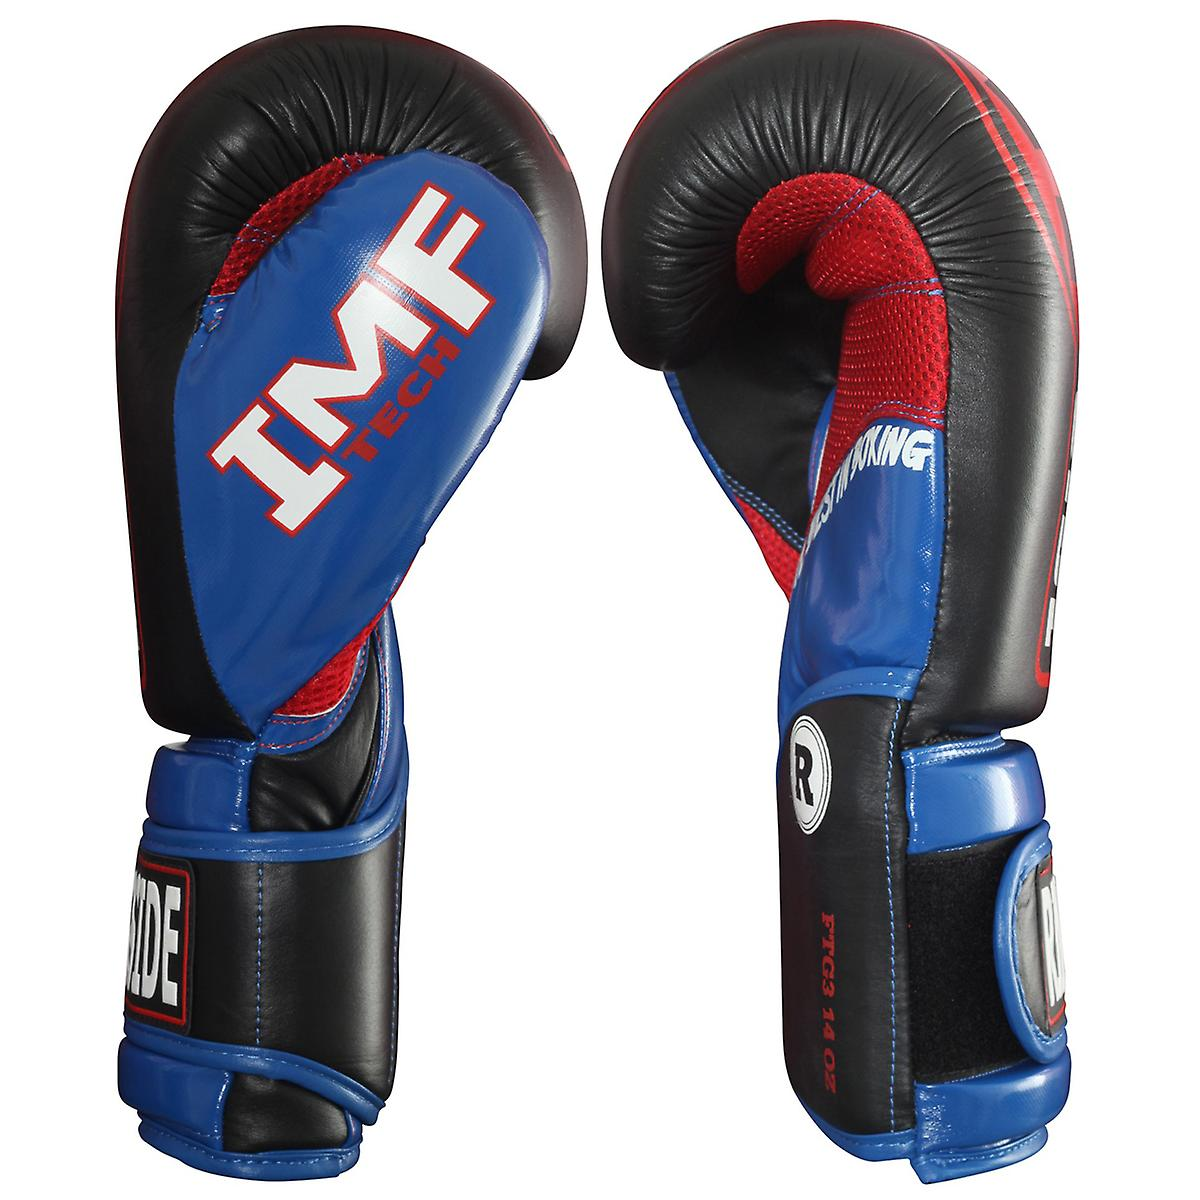 14-Ounce Ringside Apex Predator Sparring Gloves New Free Shipping